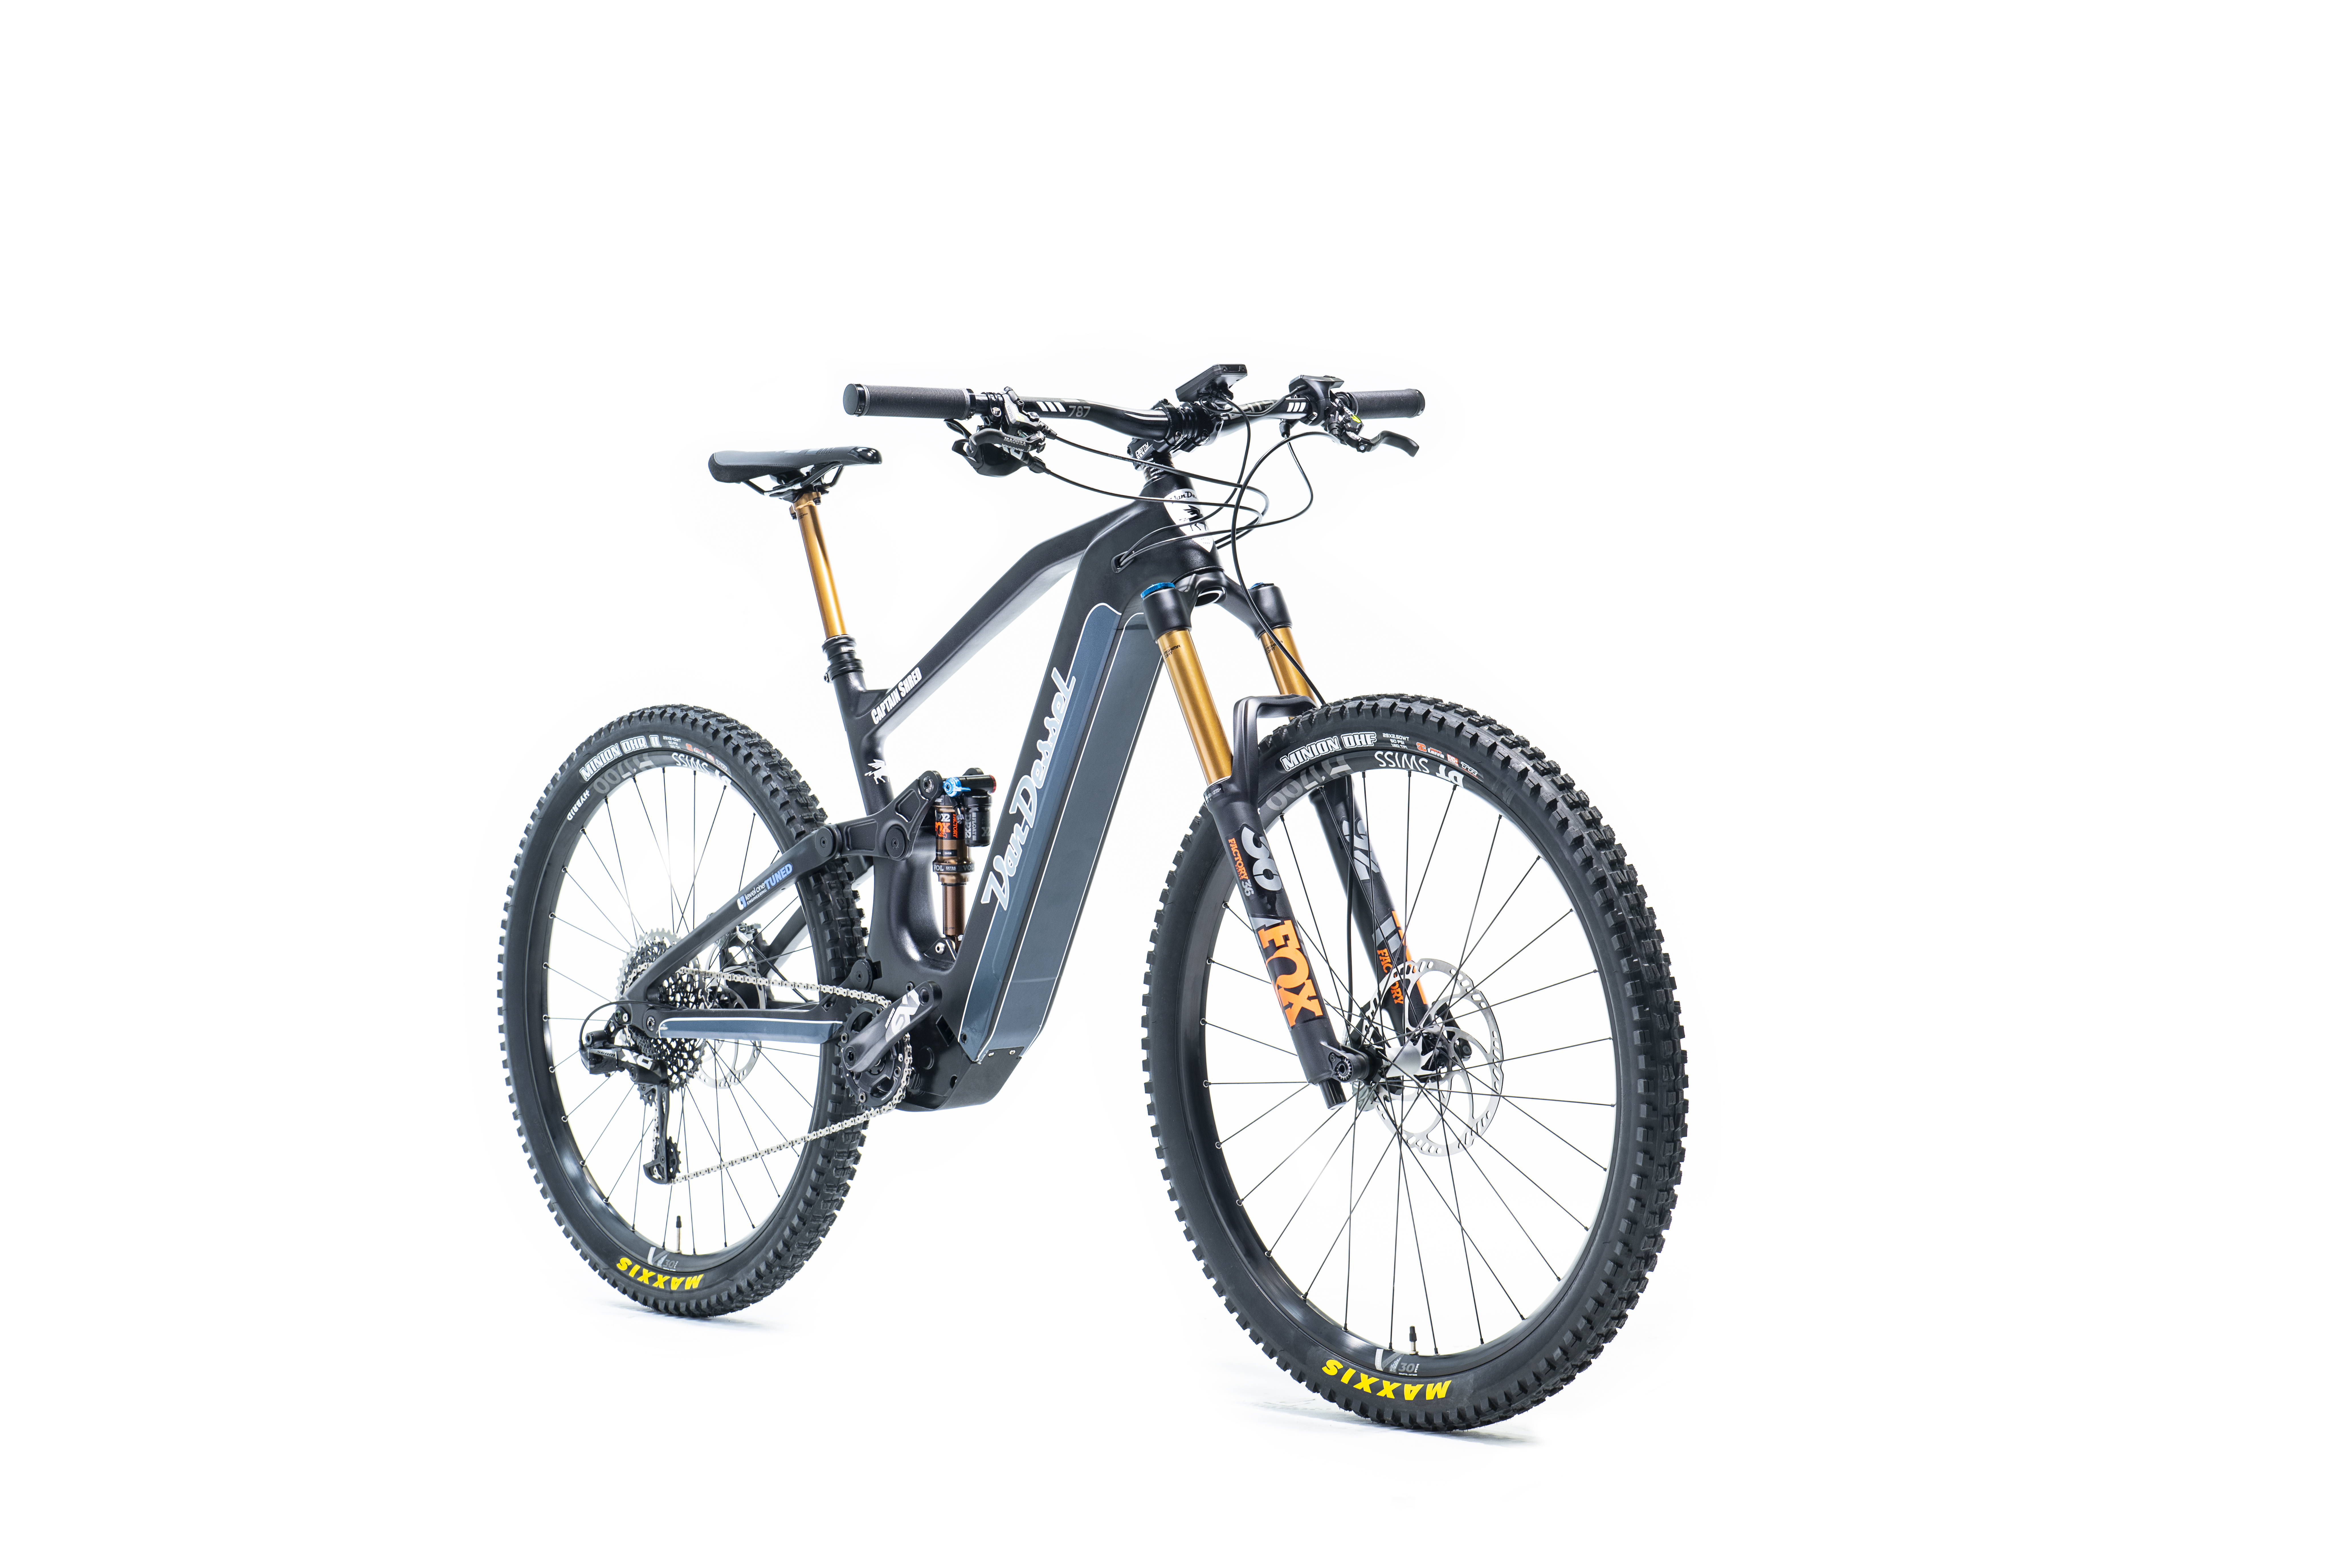 What's good about the new Panasonic e-bike motor? - MBR